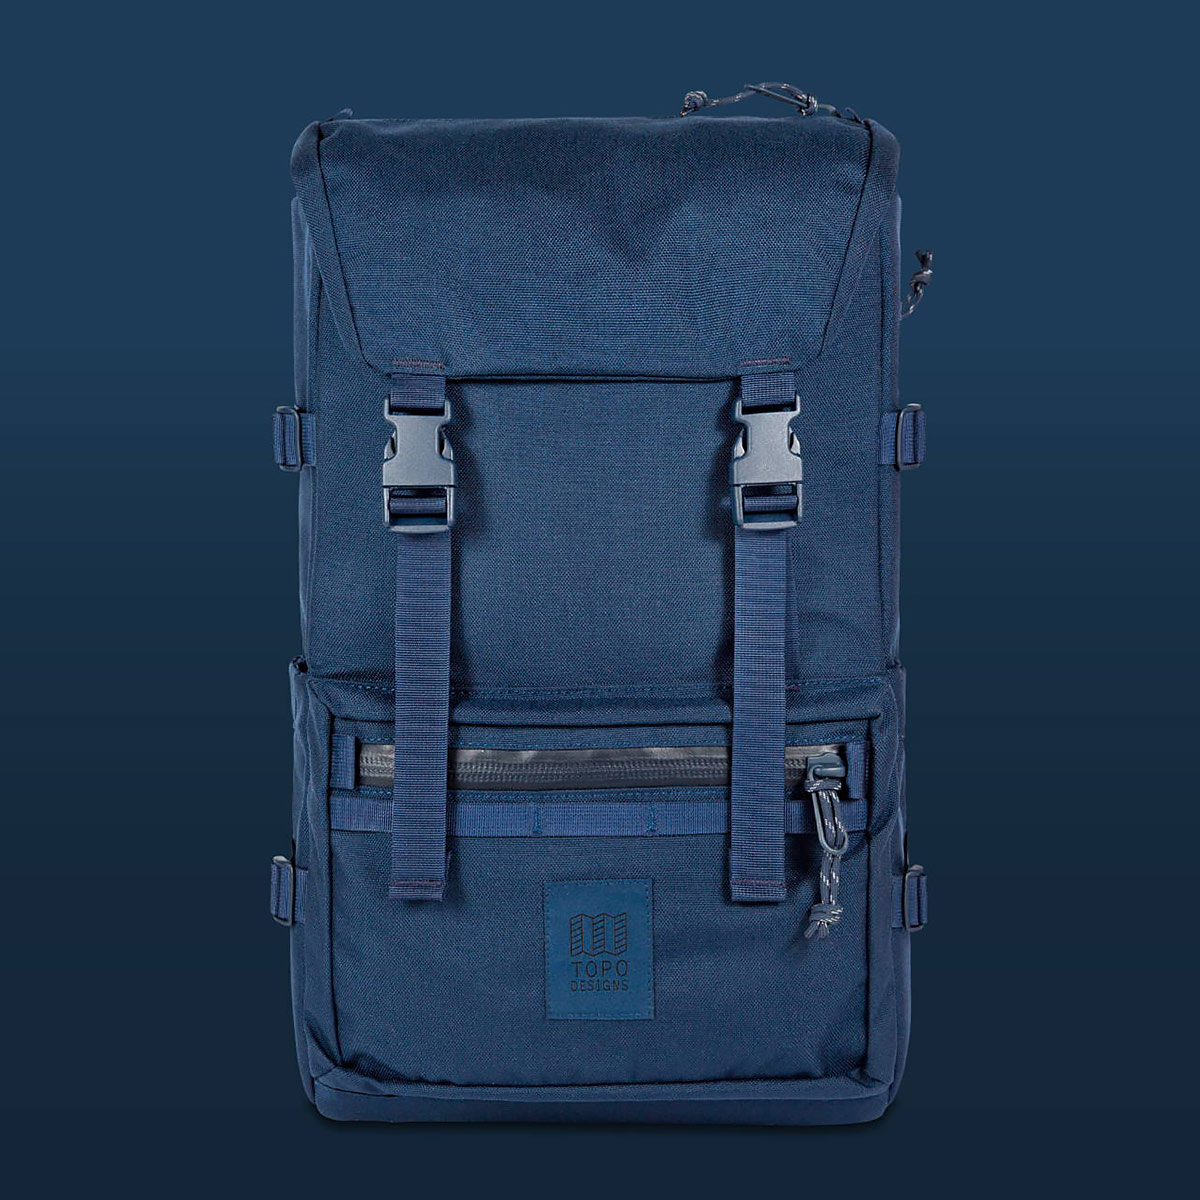 Topo Designs Rover Pack Tech Navy, backpack built to work wherever you do